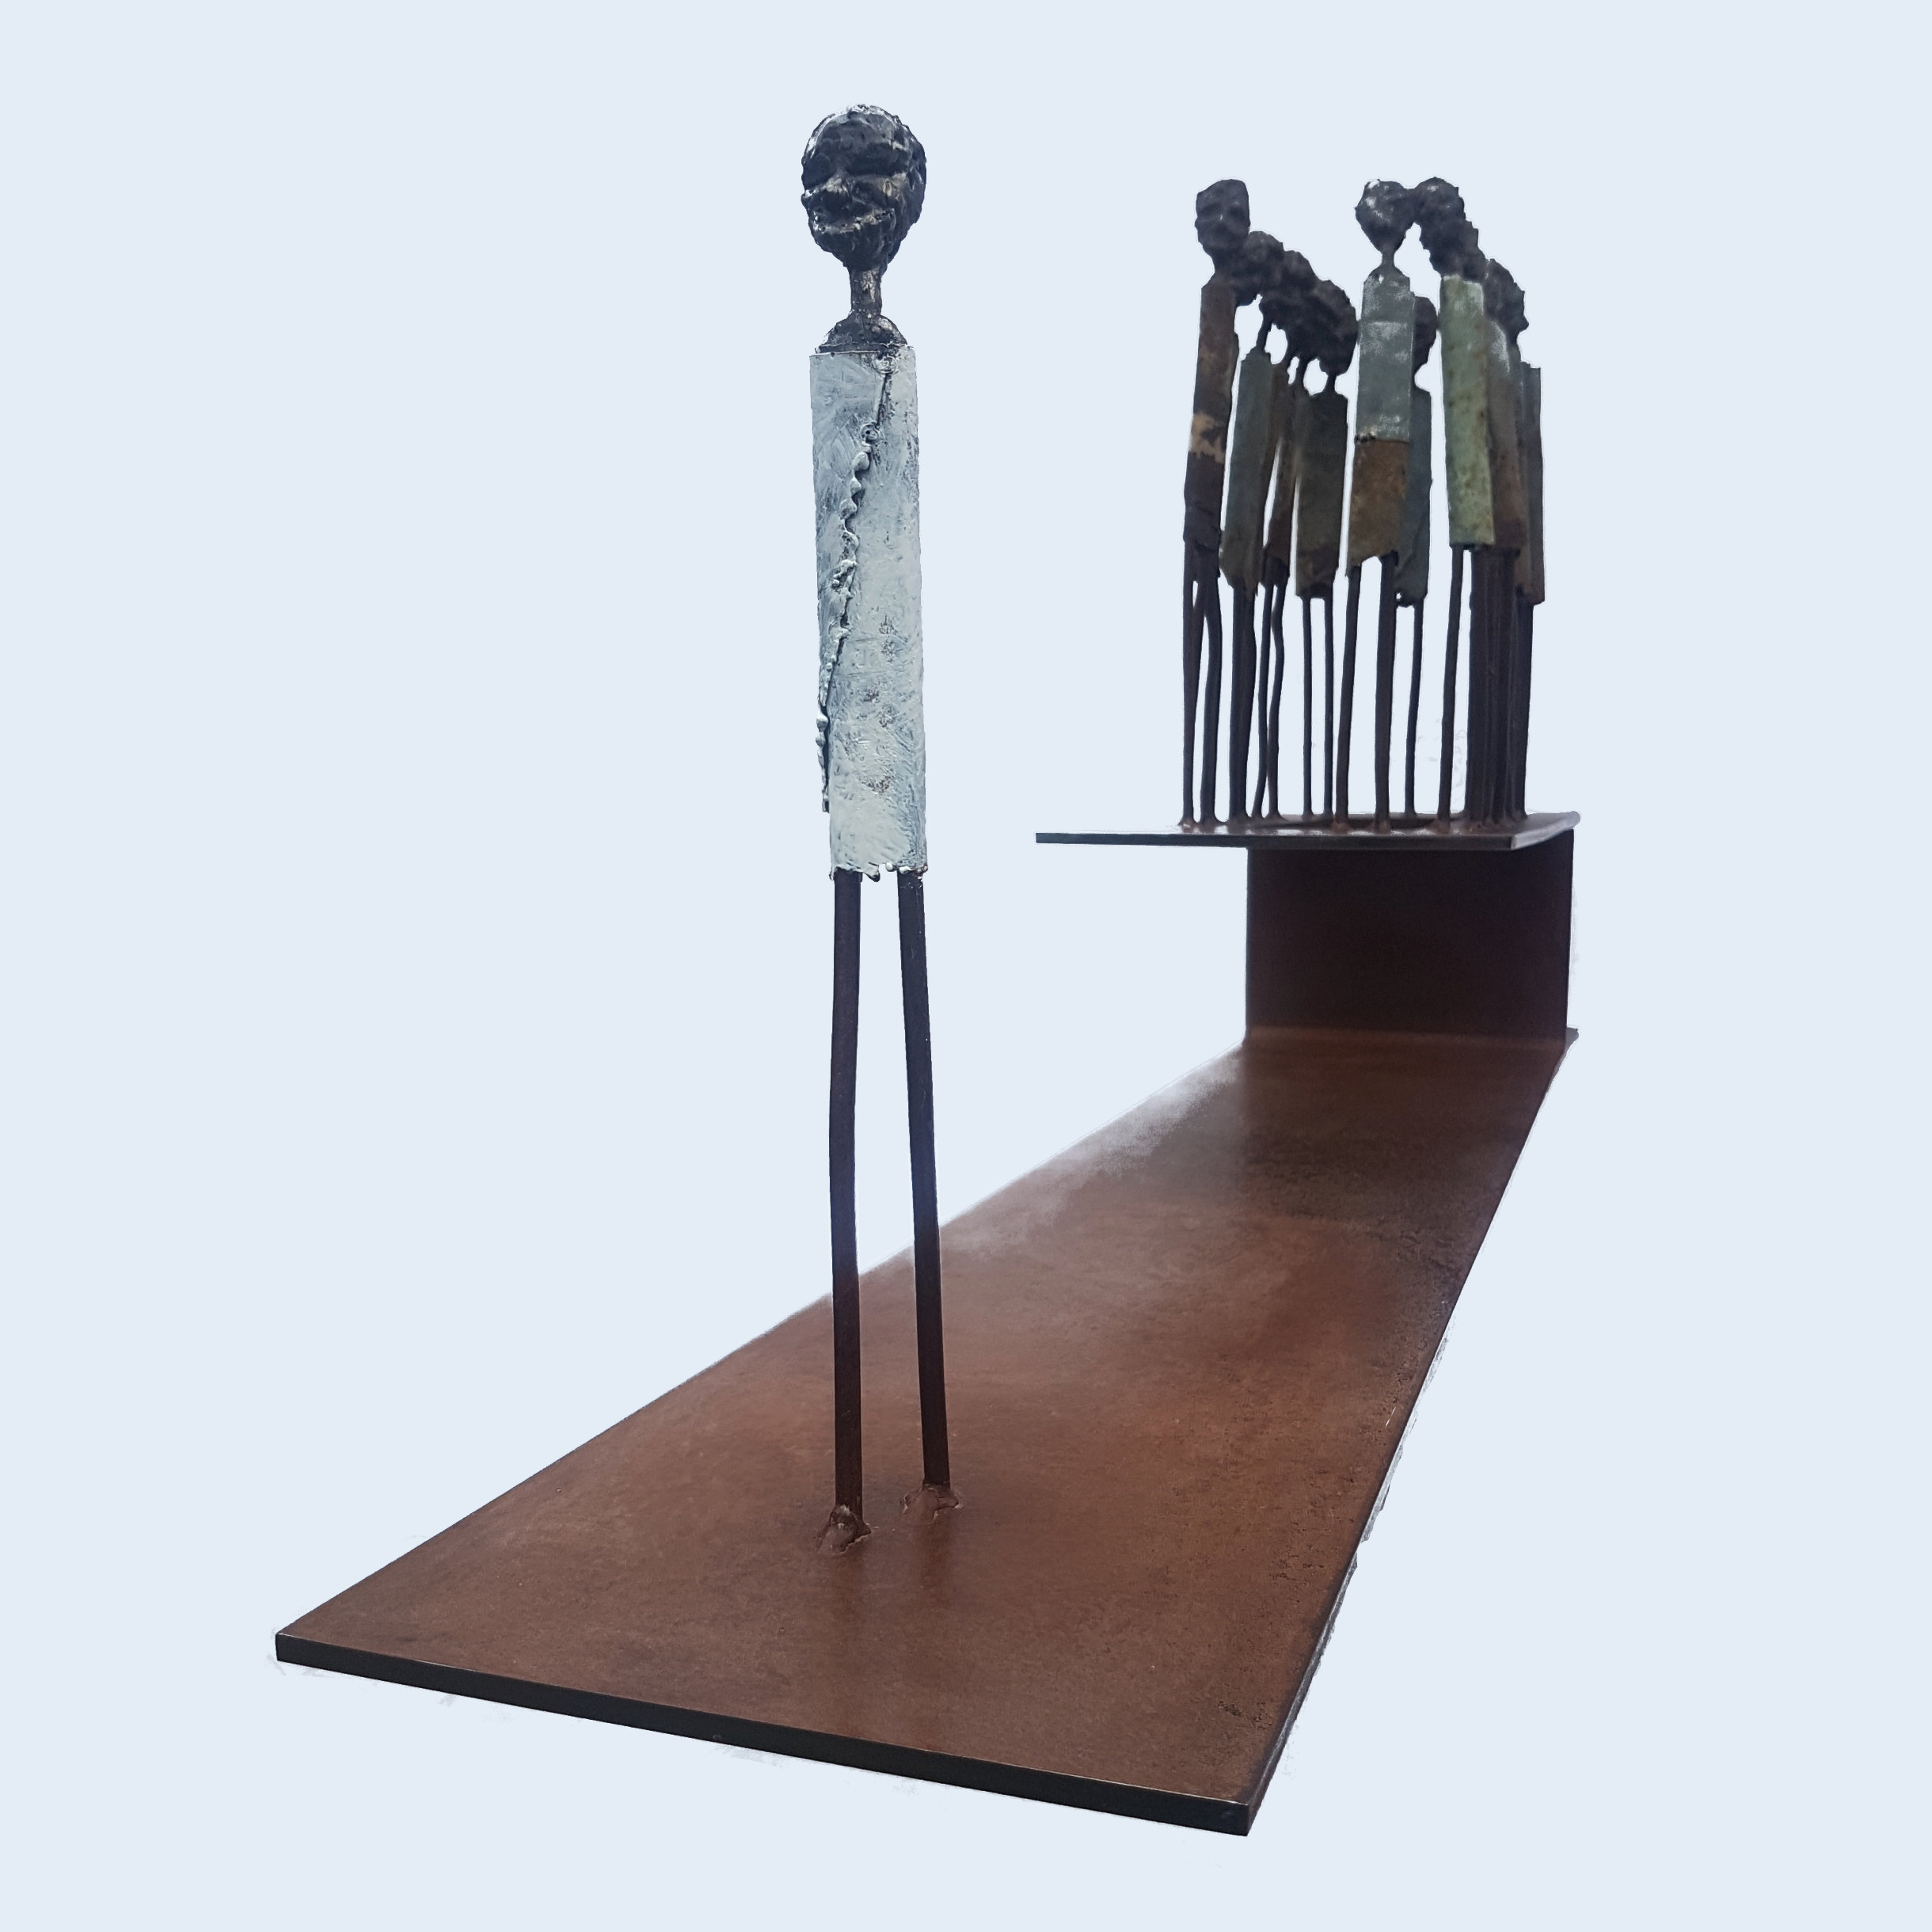 Afterlife. Steel sculpture by Tony O'Keefe. Queenstown Artist.